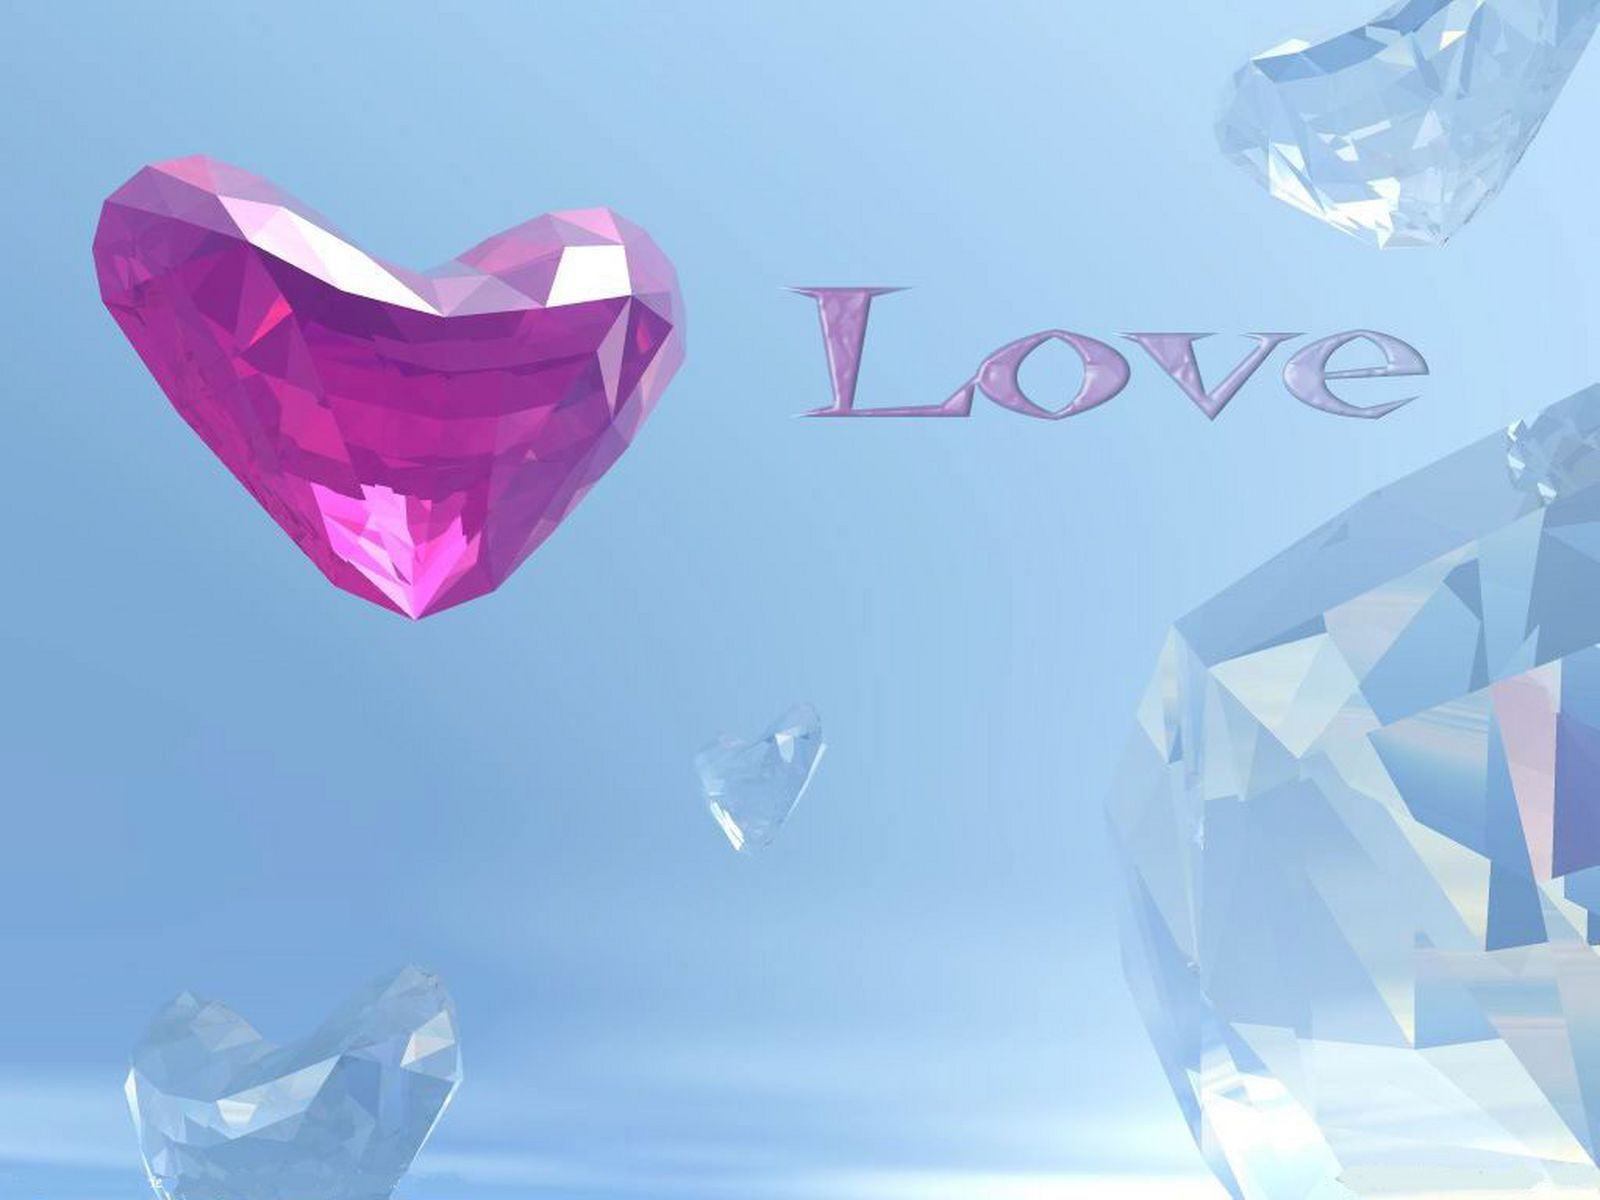 Love Wallpaper 3d Free : Love Wallpapers Hot Picures: Love Wallpaper Backgrounds